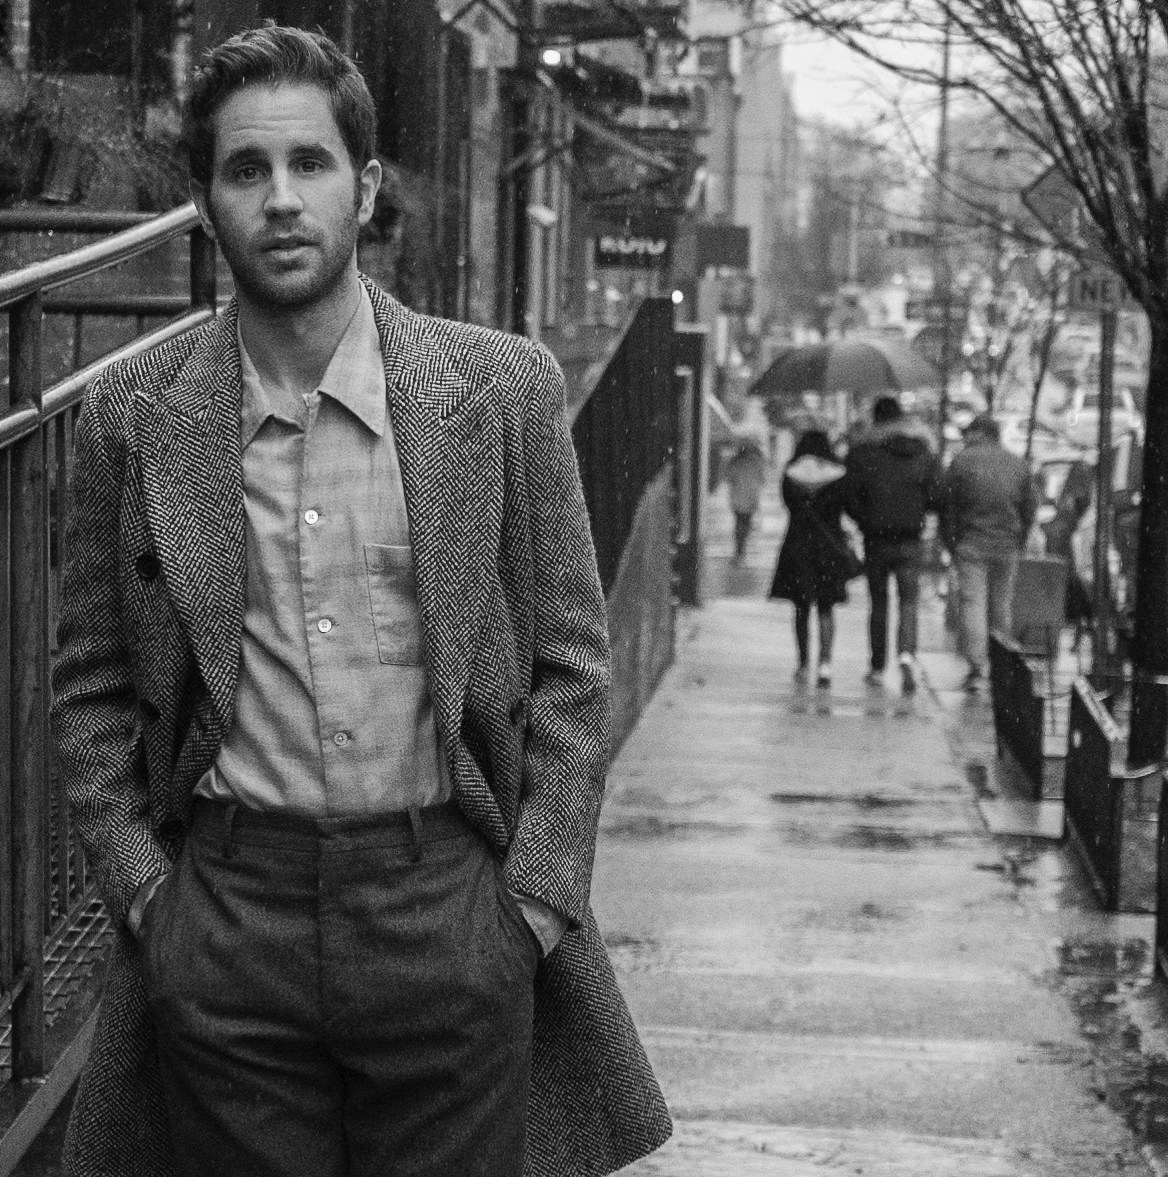 Ben Platt says he will be back performing in the UK at some point, which hopefully means more tales like the one when his parents used a McFlurry to bribe him to join in football practice